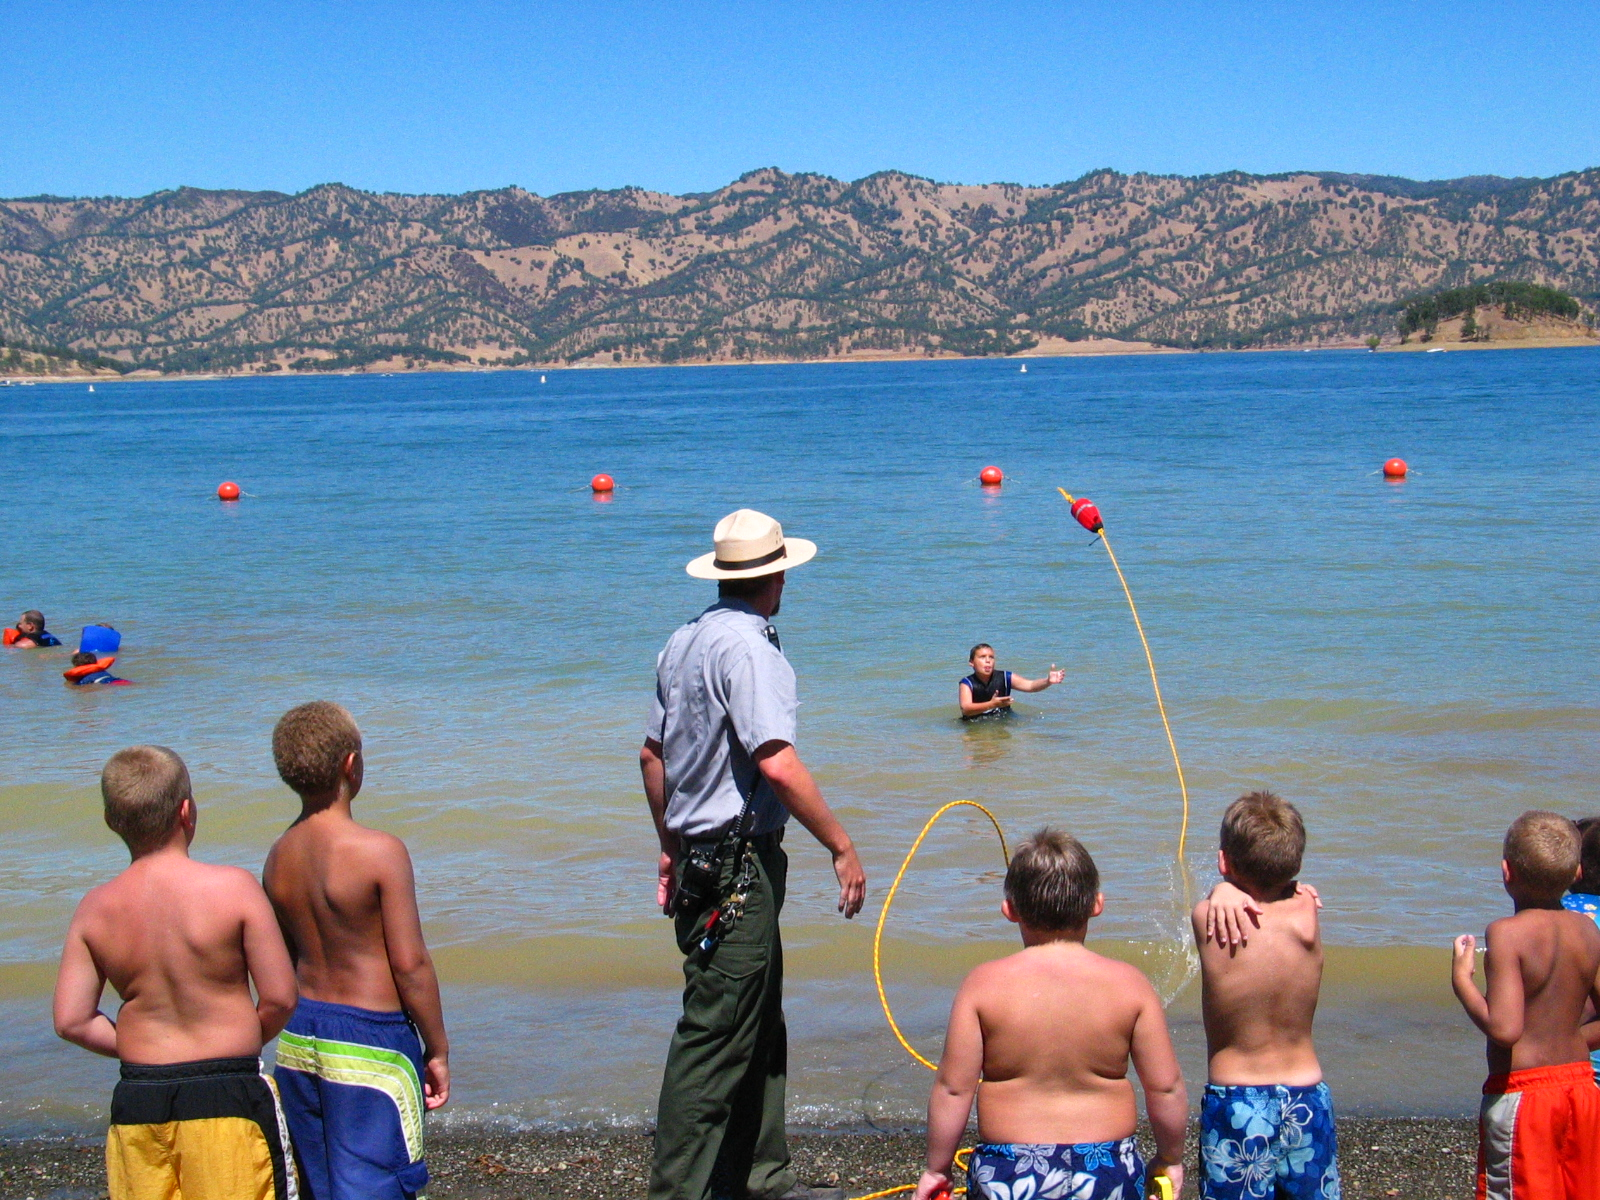 Photograph Of Children In The Water Getting Life Saving Tips From A Ranger Click For